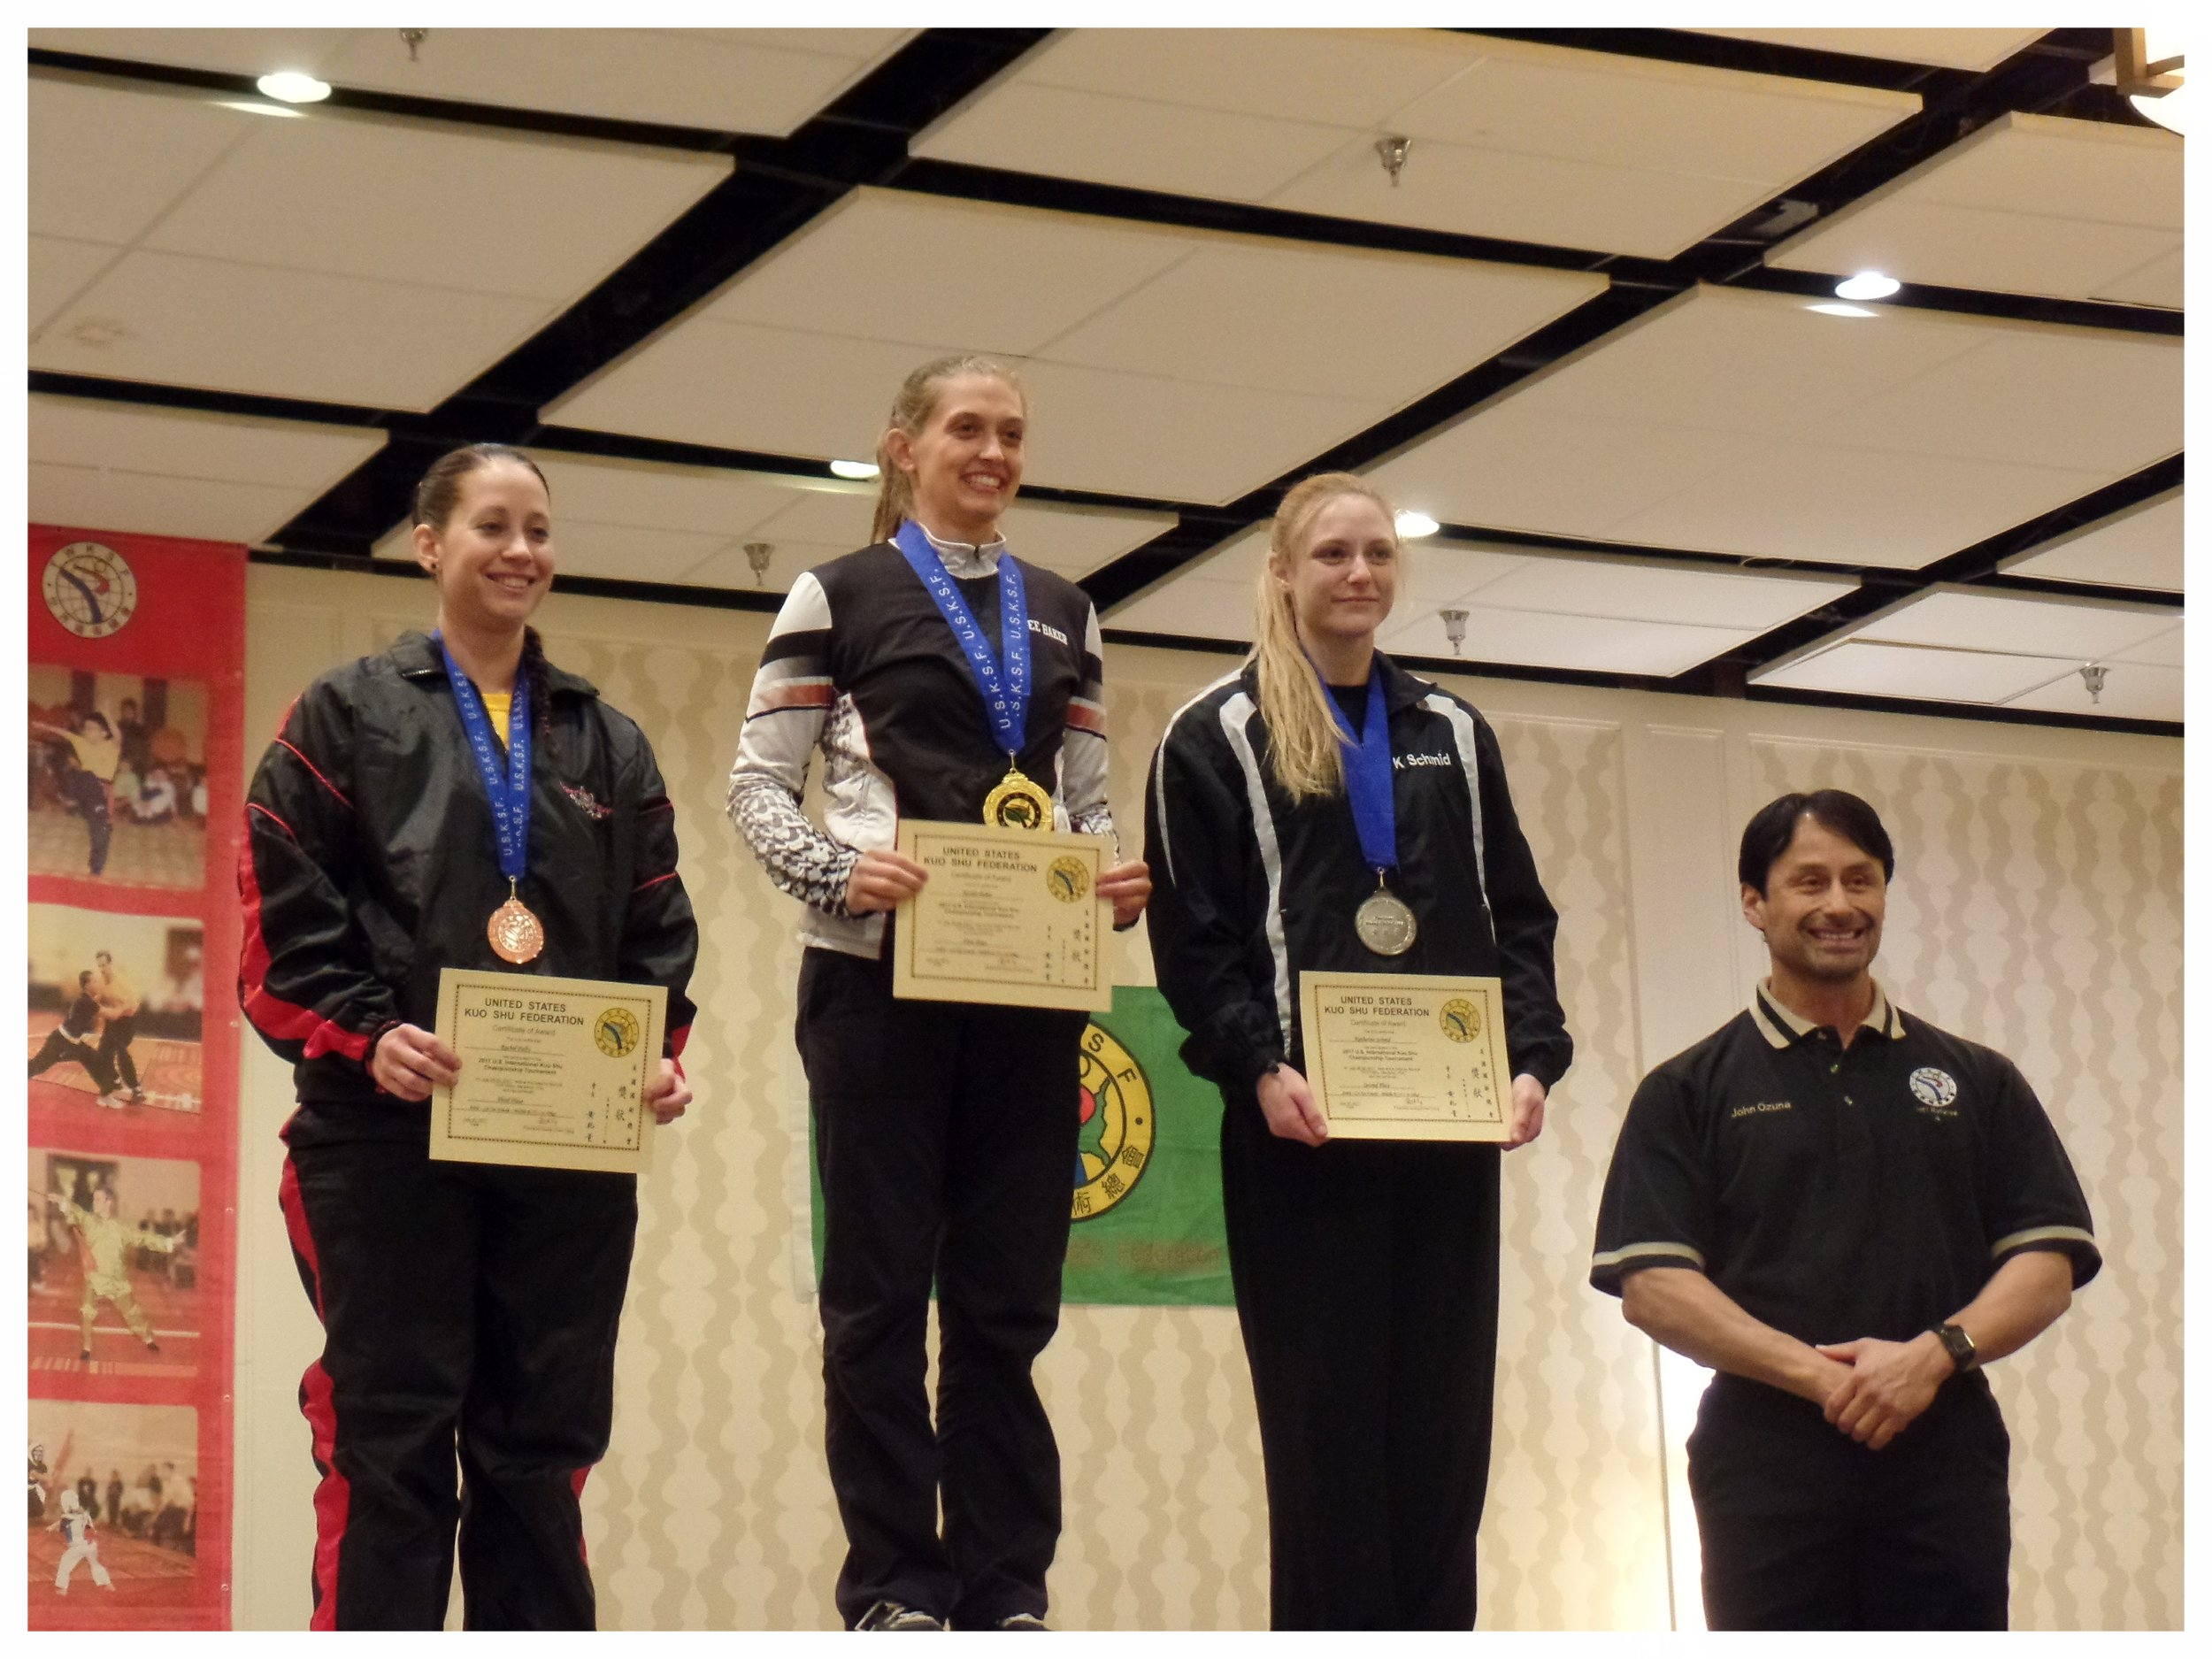 Katie Schmid receives 2nd place in Lei Tai fighting with Master Ozuna at the USKSF International Championship tournament, 2017